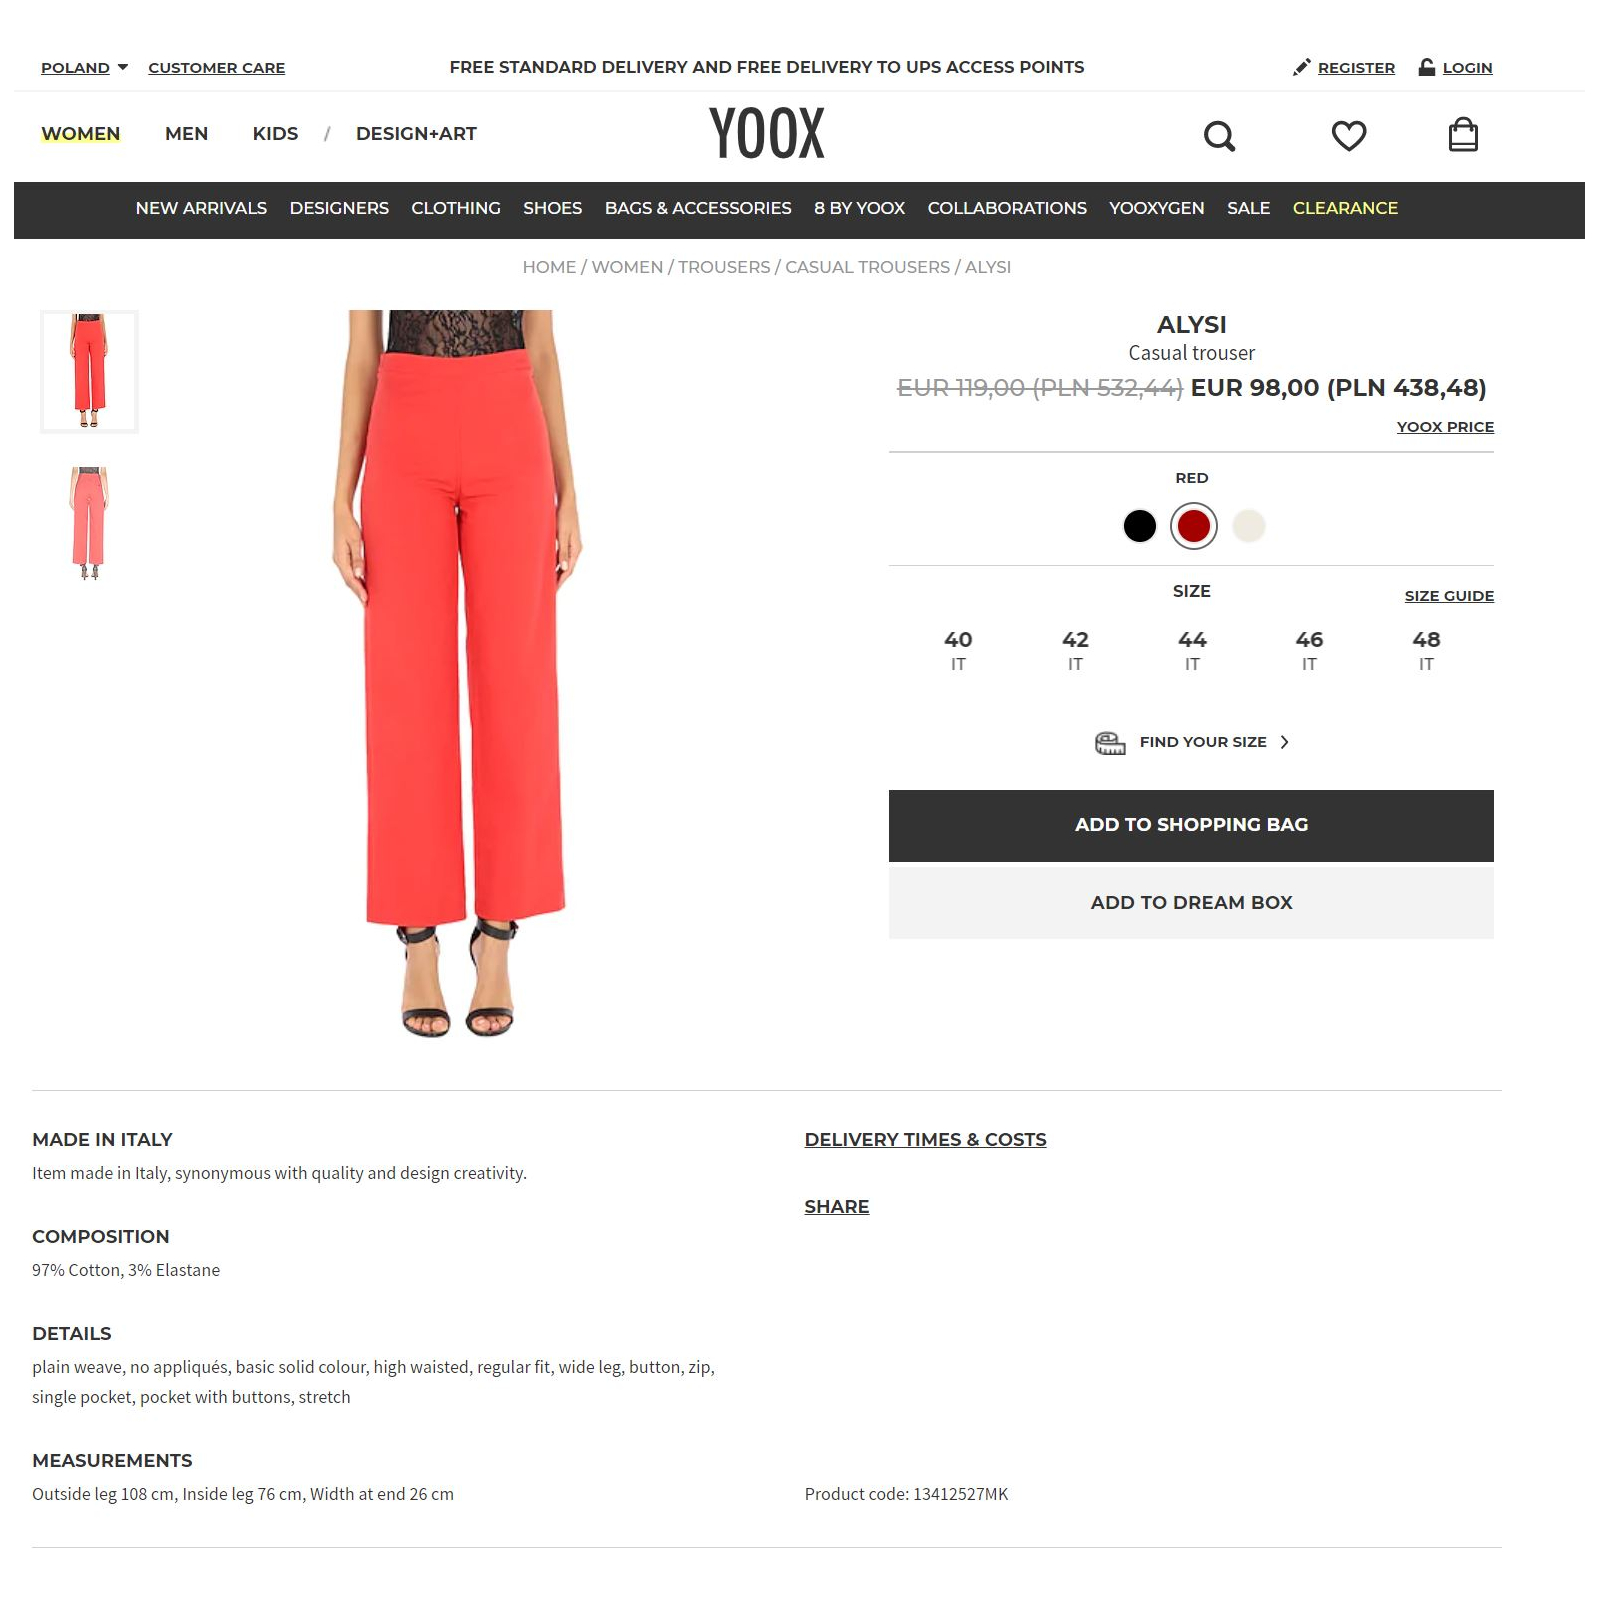 ALYSI Casual trouser 44 Italy